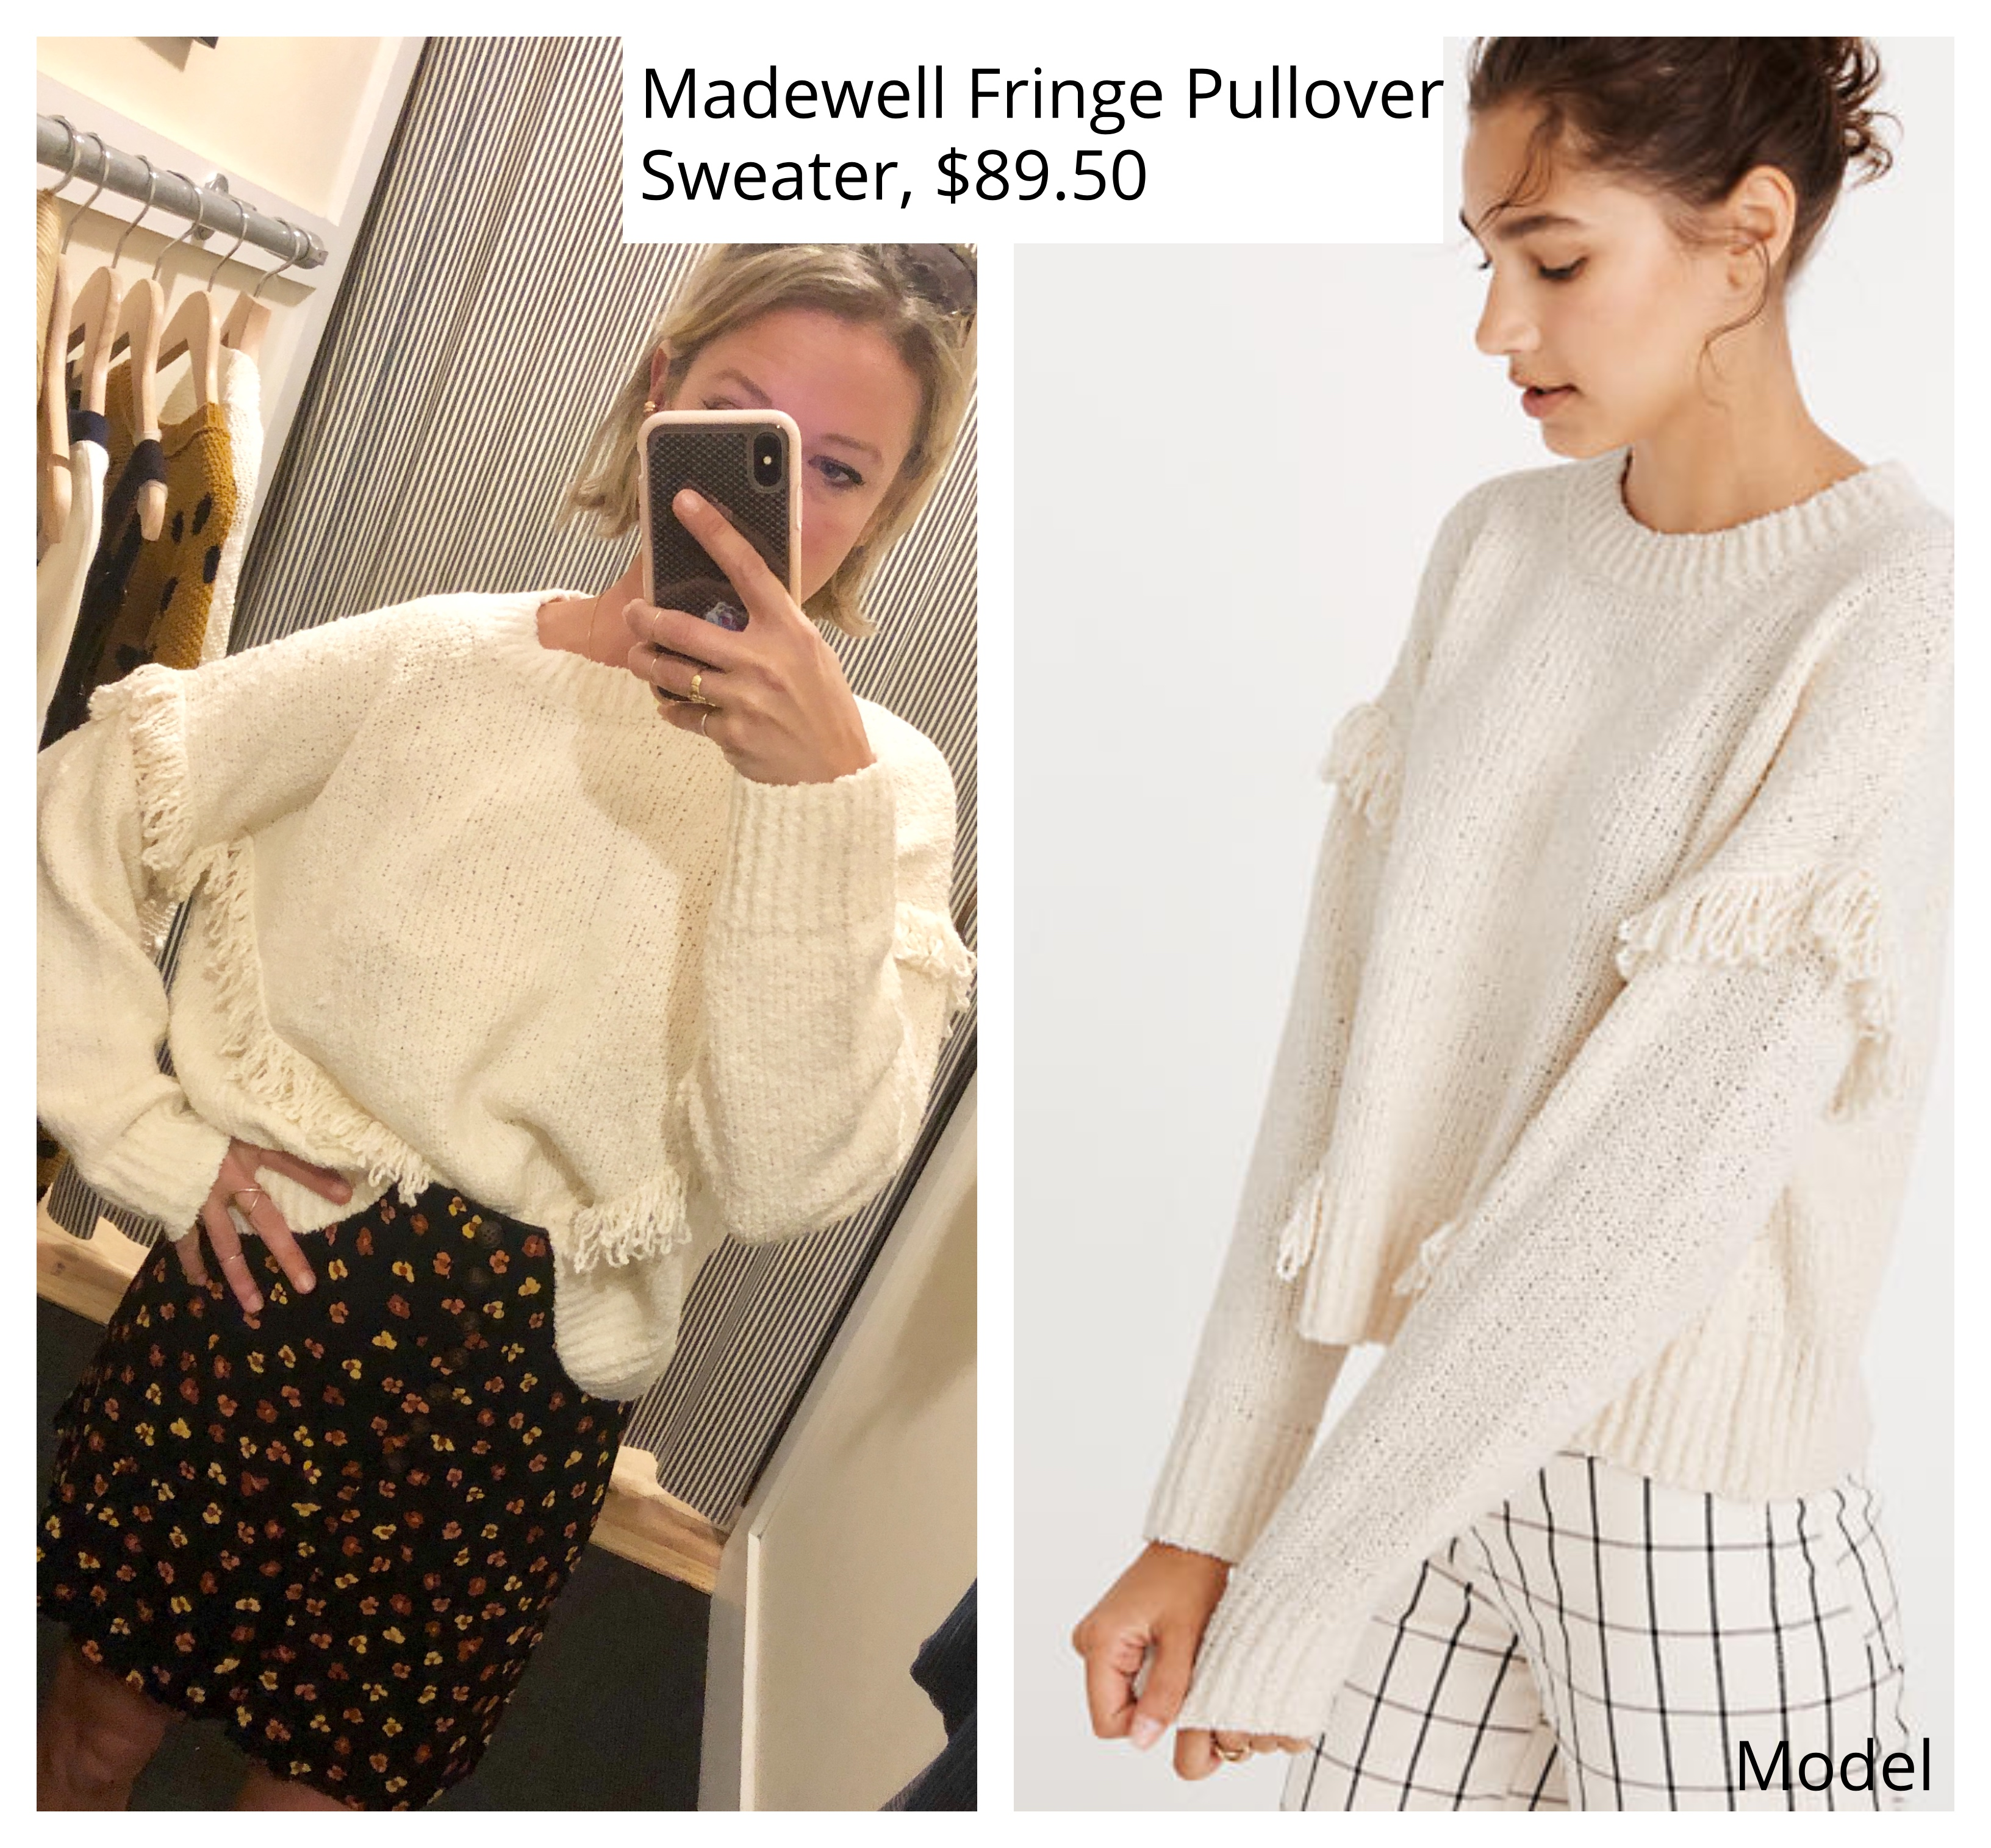 madewell montford fringe pullover sweater